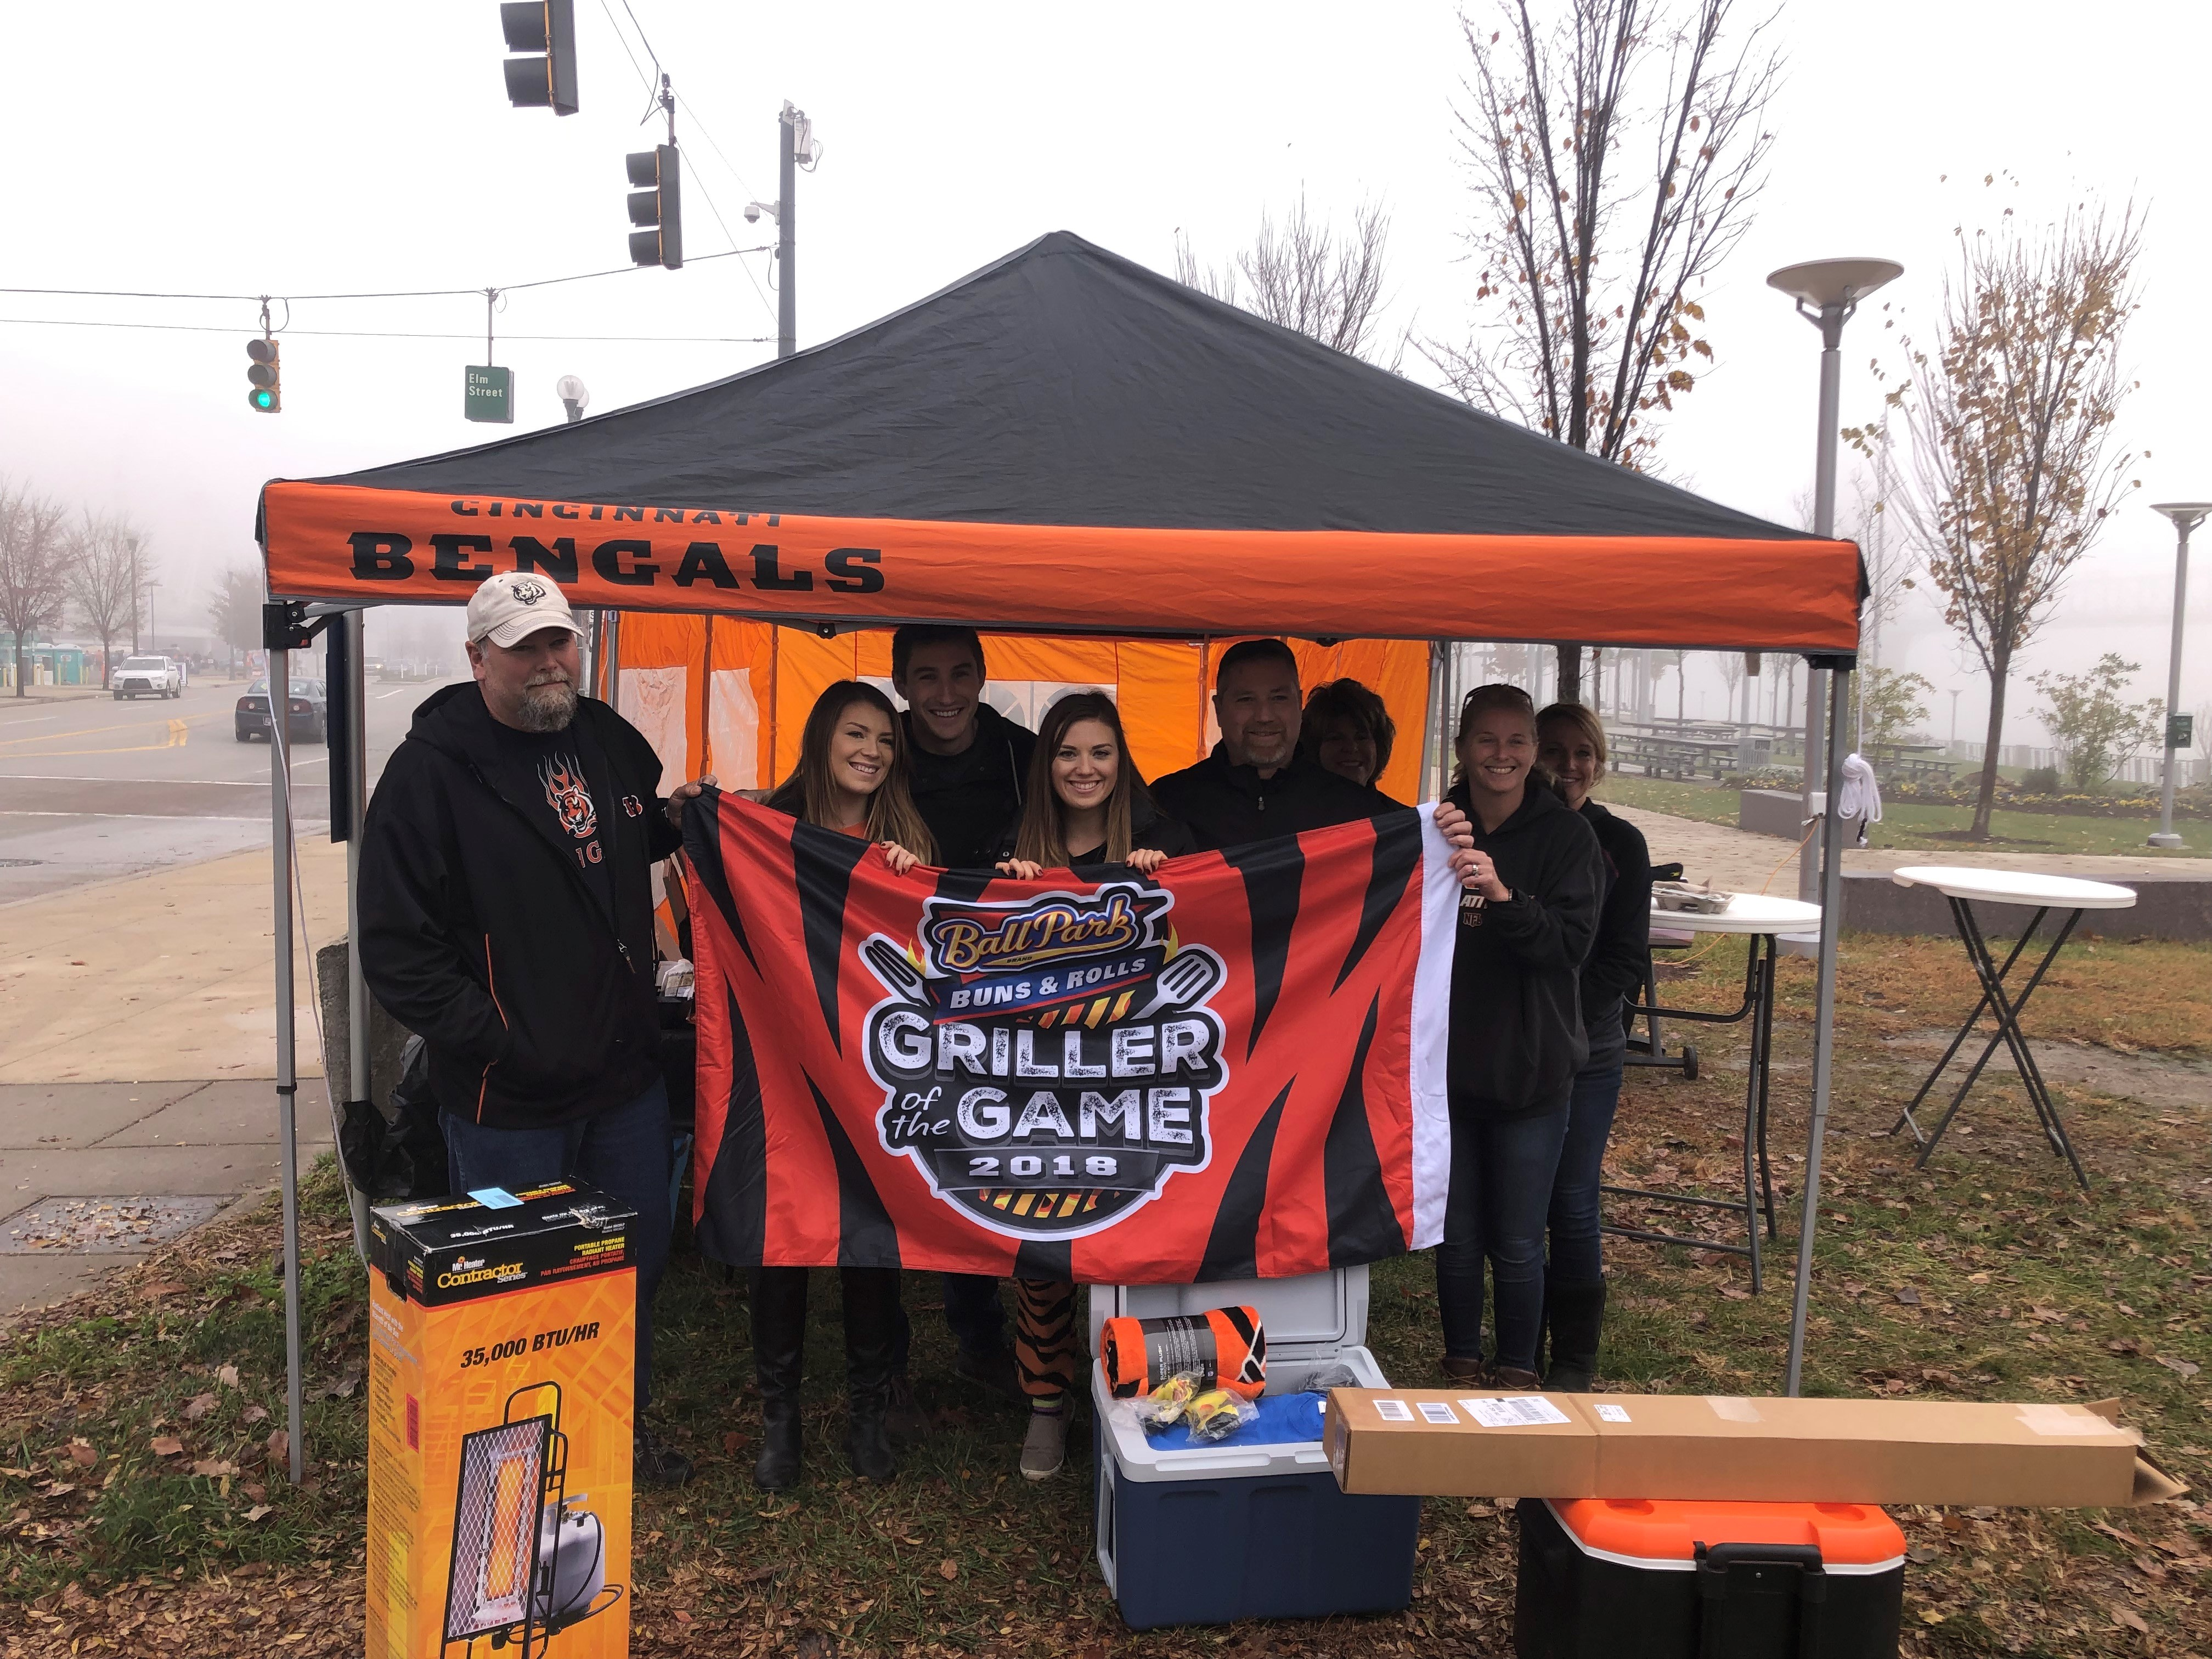 11/25 - Browns Griller of the Game